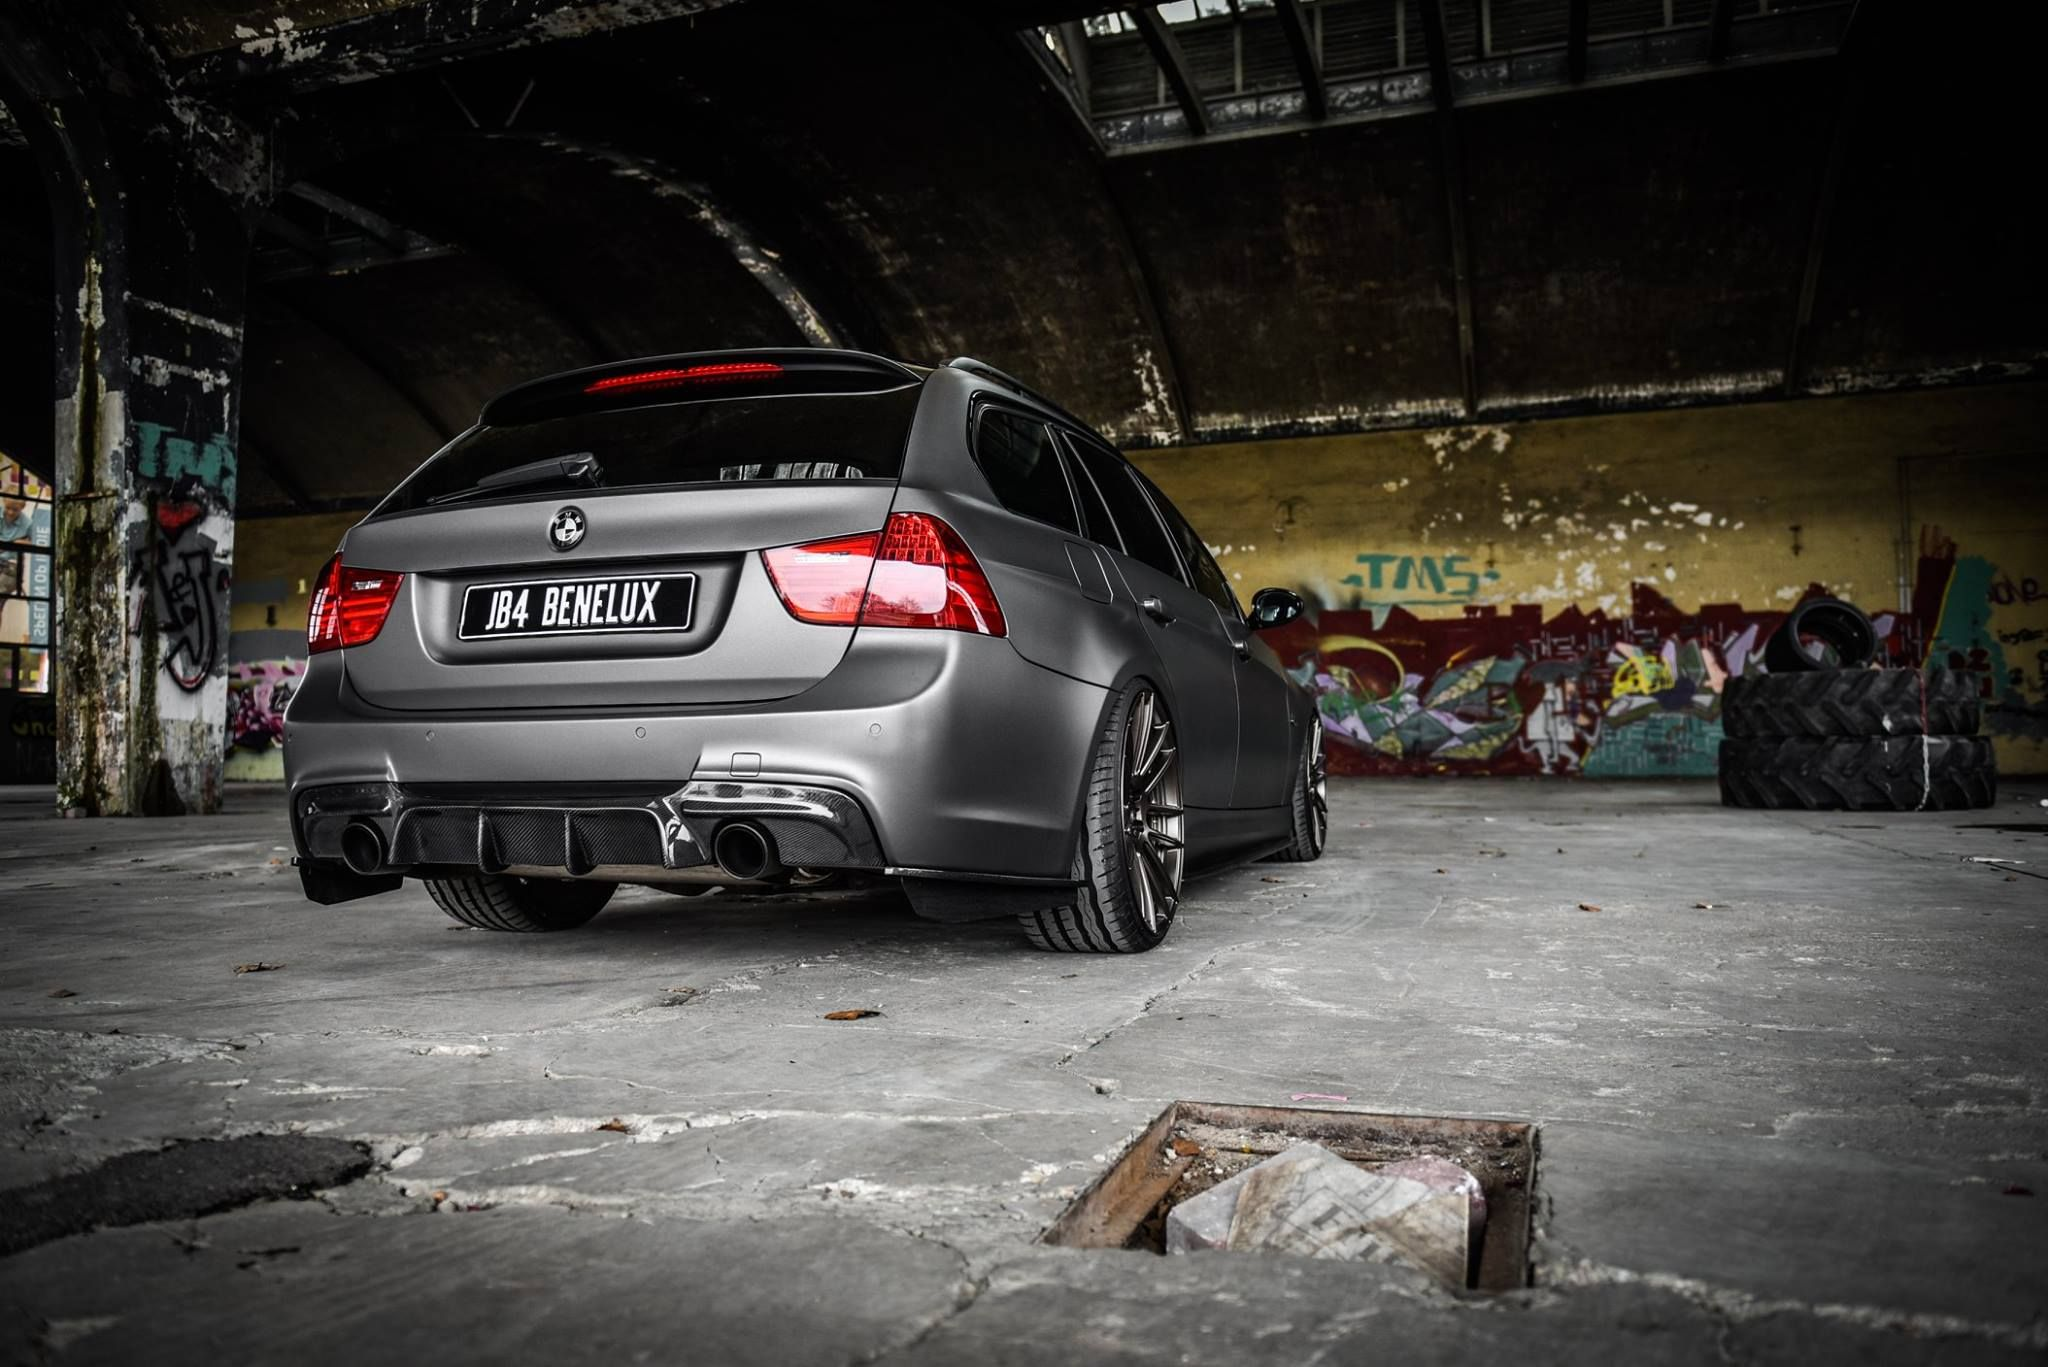 813hp bmw 335i touring by jb4 tuning benelux picture by for Benelux cars